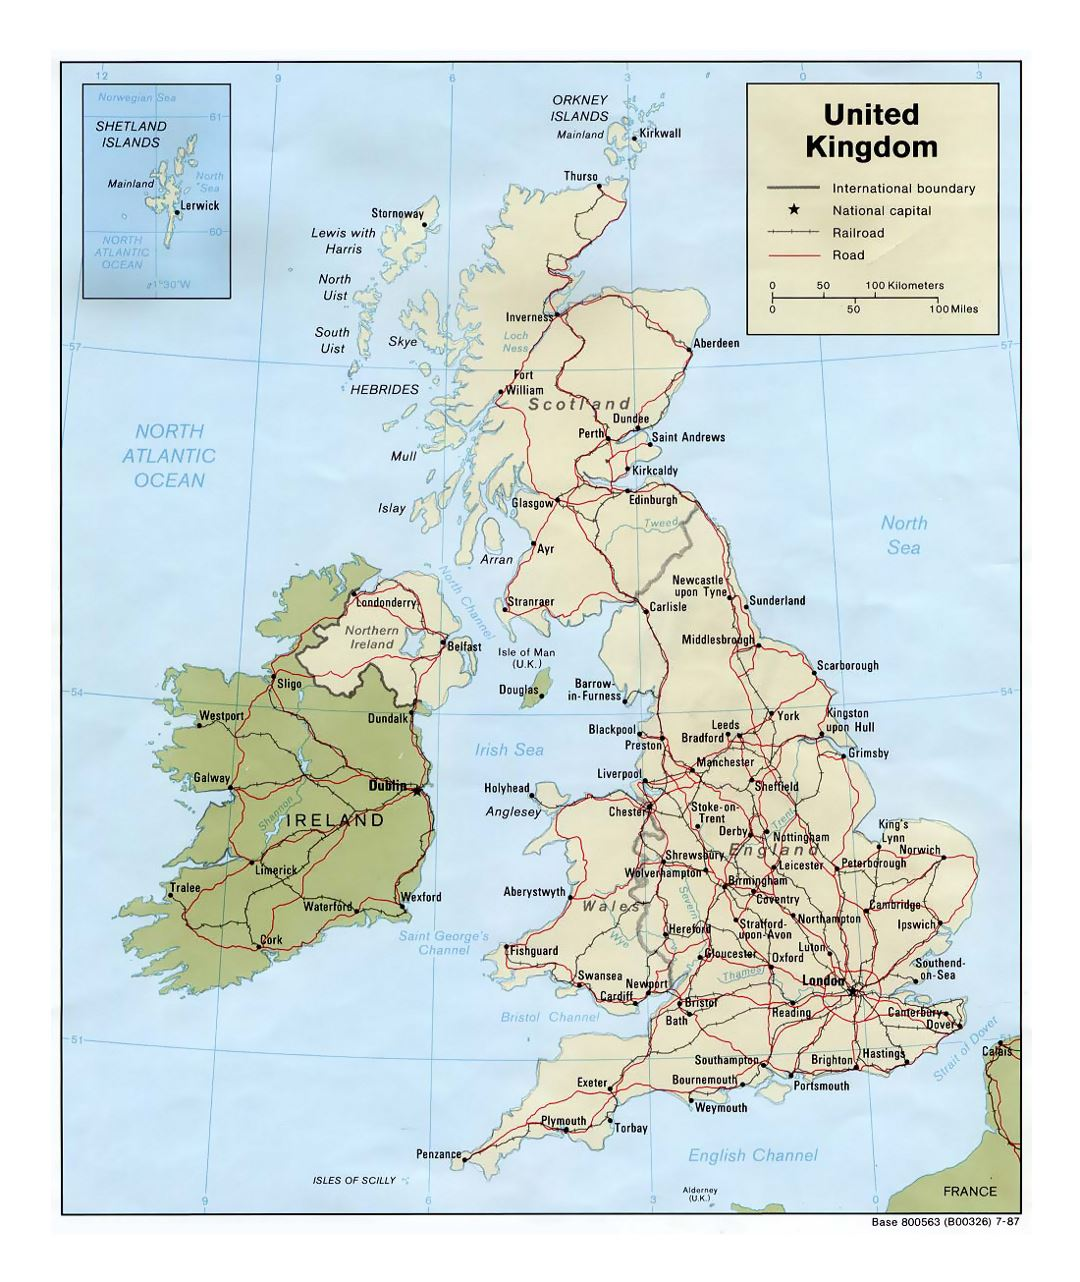 Detailed political map of United Kingdom with roads, railroads and major cities - 1987